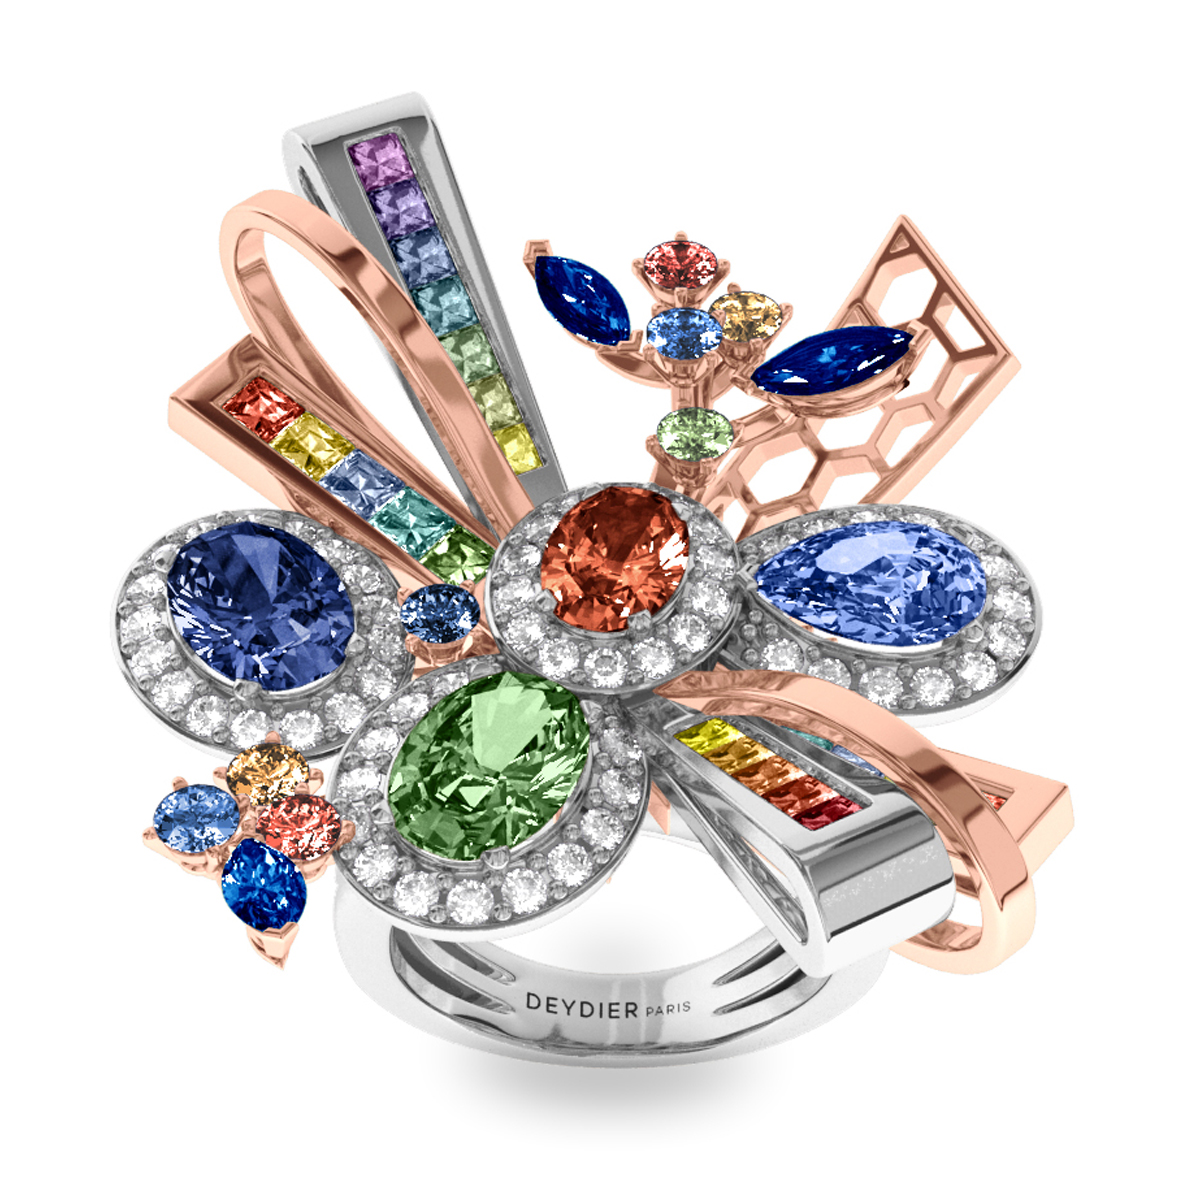 Bague Rainbow - Diamants blancs & saphirs <br> Or blanc et rose 18 carats